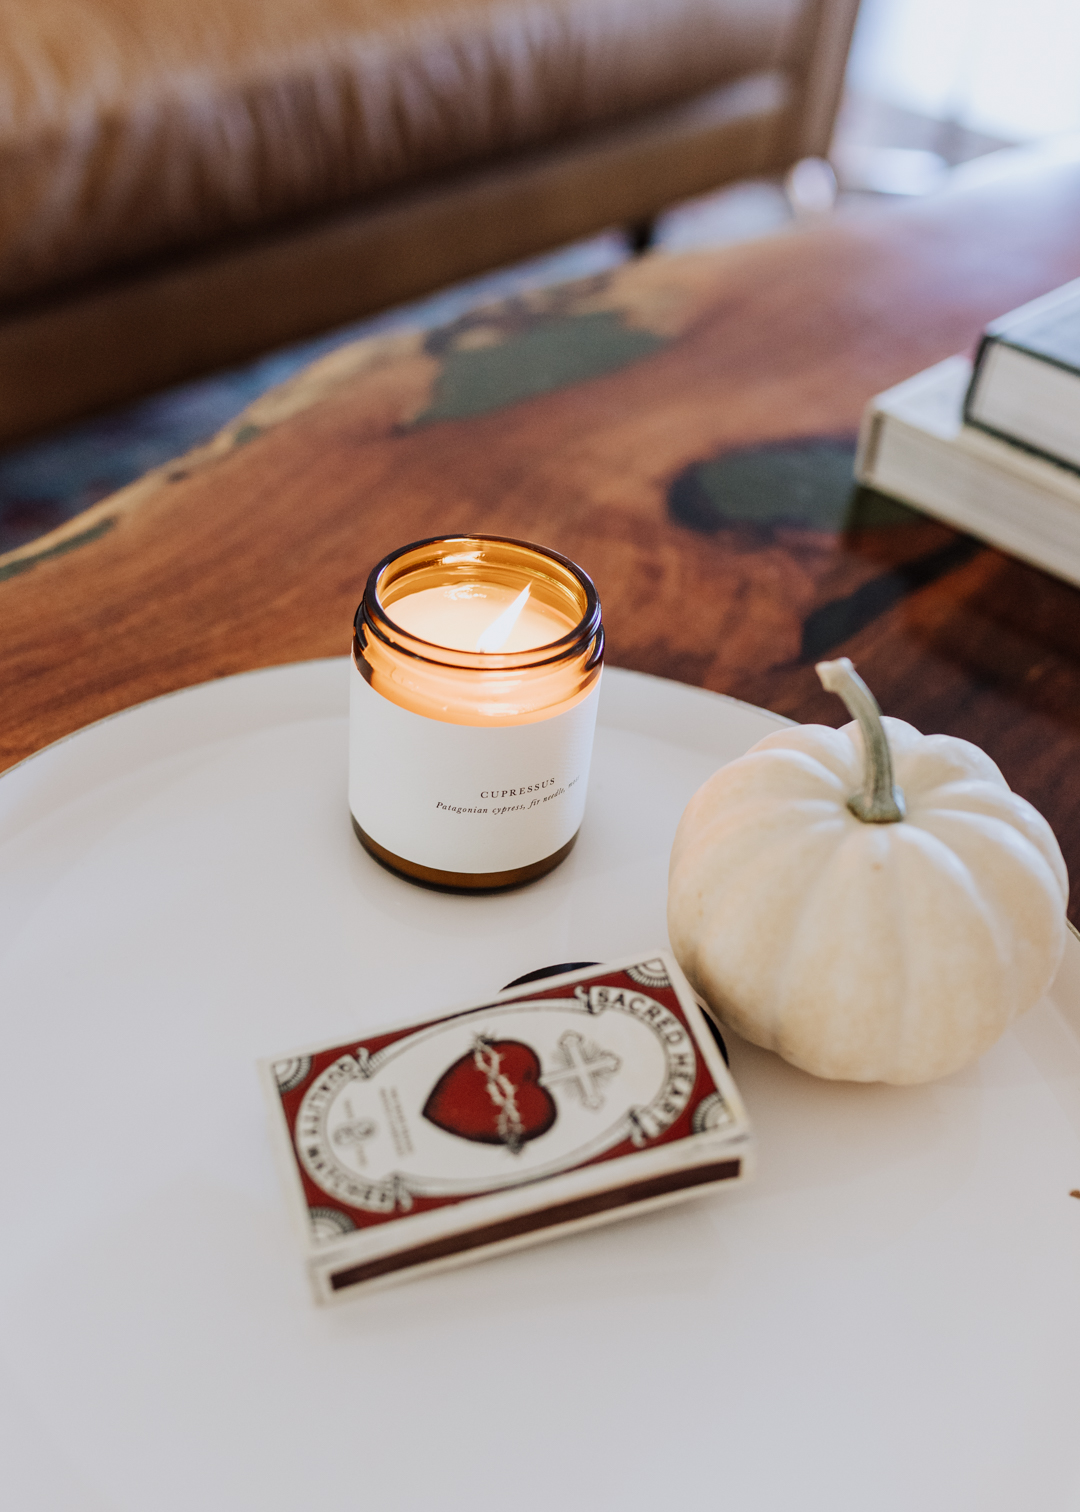 the best candles from barratt riley & co for the holidays and beyond | thelovedesignedlife.com #candles #holidays #pumpkinspicce